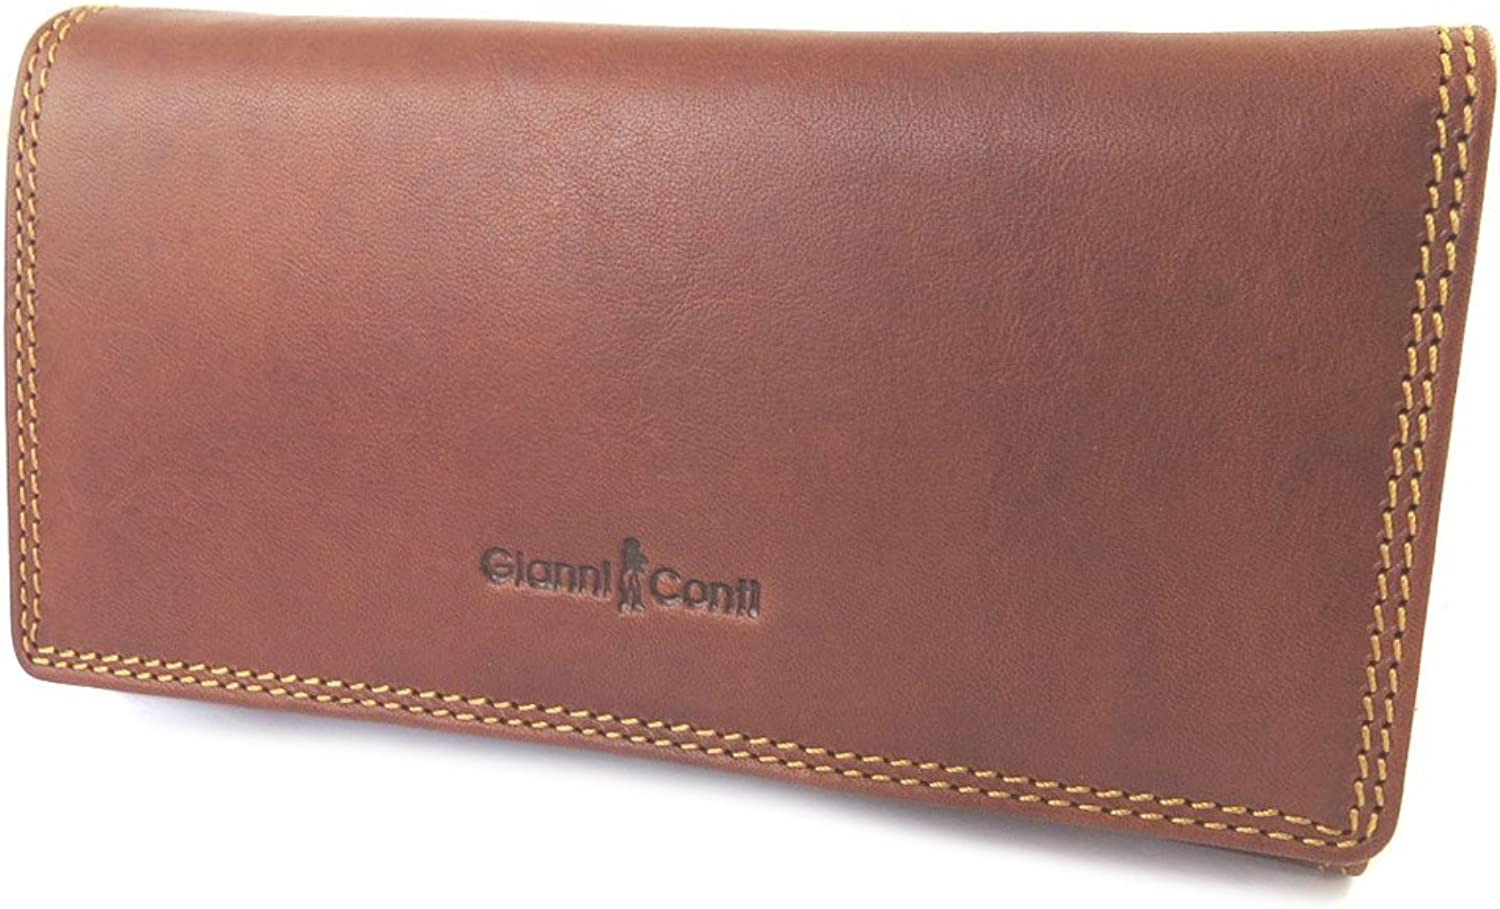 Gianni Conti [N8018]  Leather wallet + checkbook holder 'Gianni Conti' black  17.5x9.5x4 cm (6.89''x3.74''x1.57'').